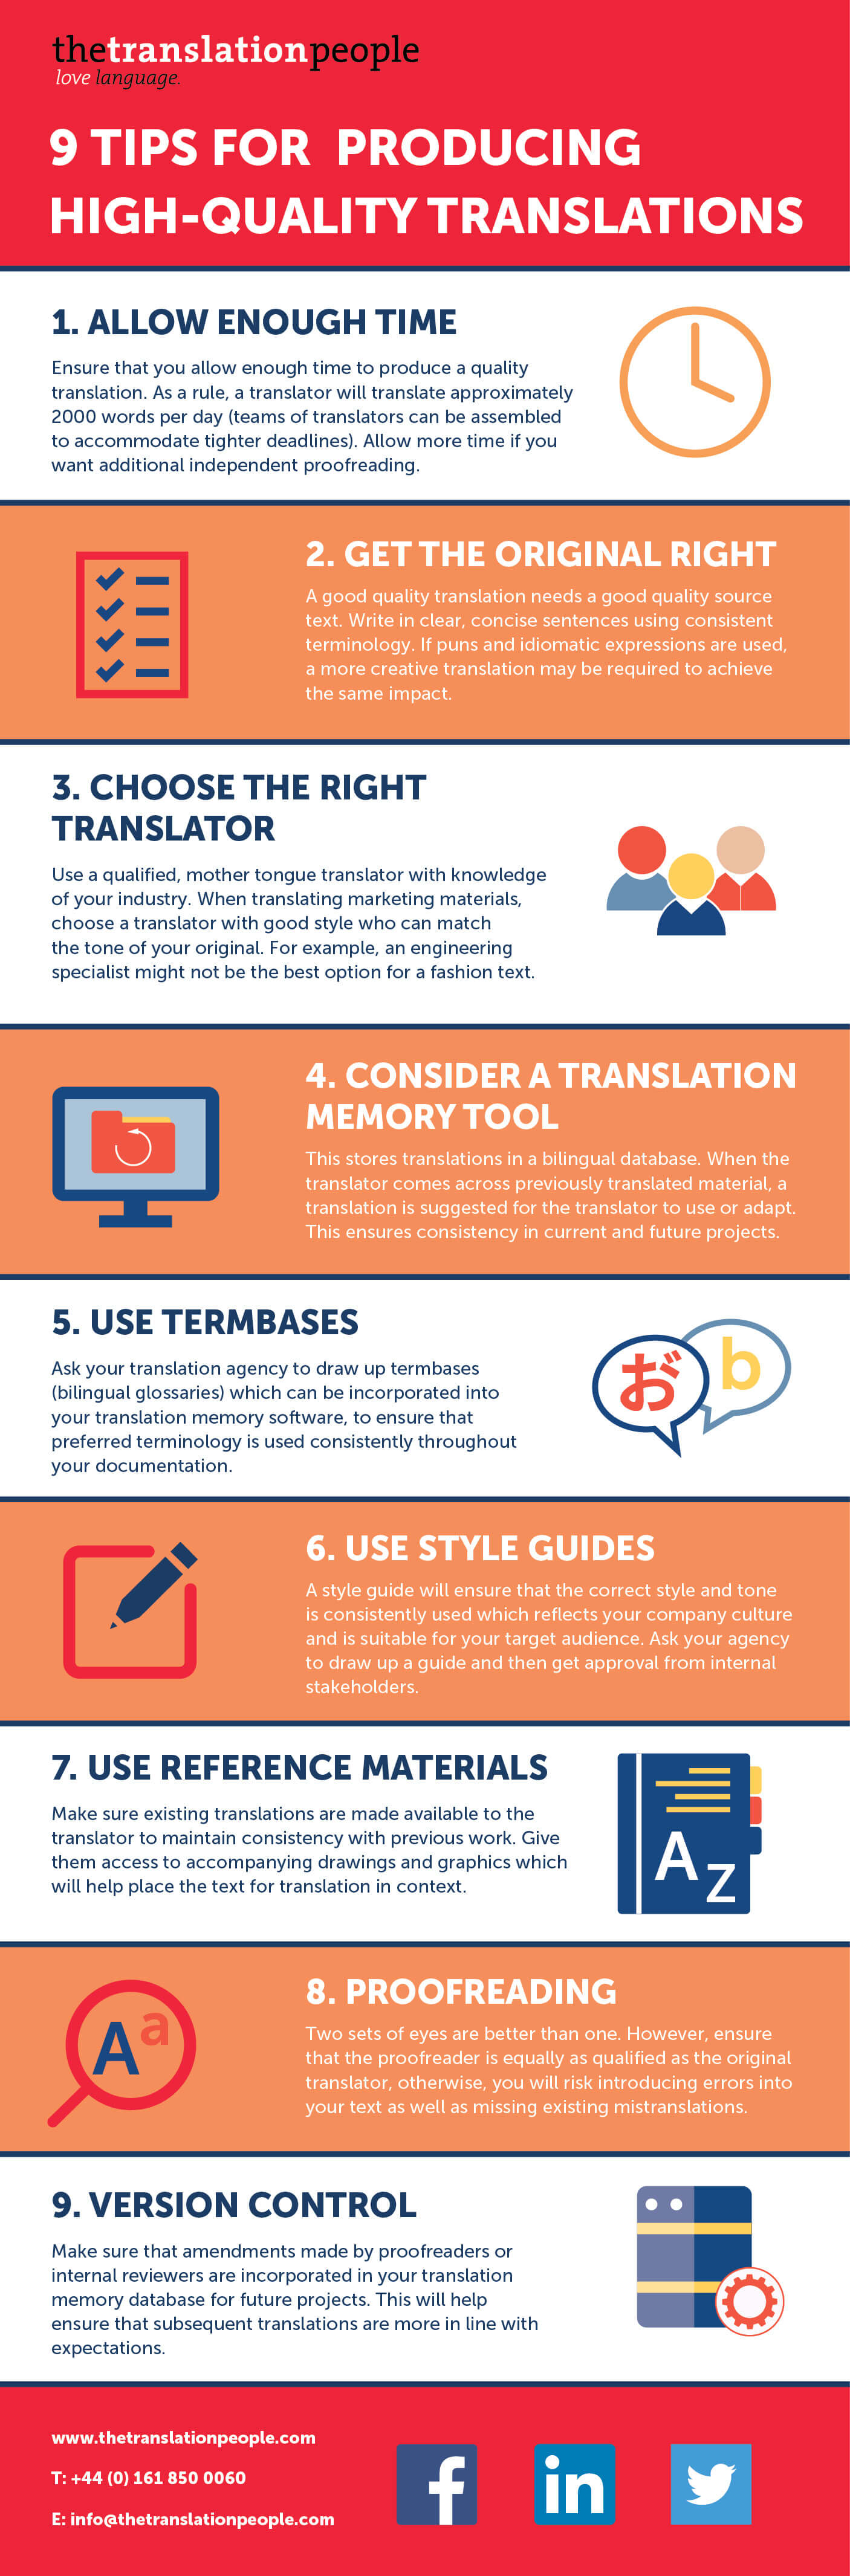 9 Tips for Producing High-Quality Translations